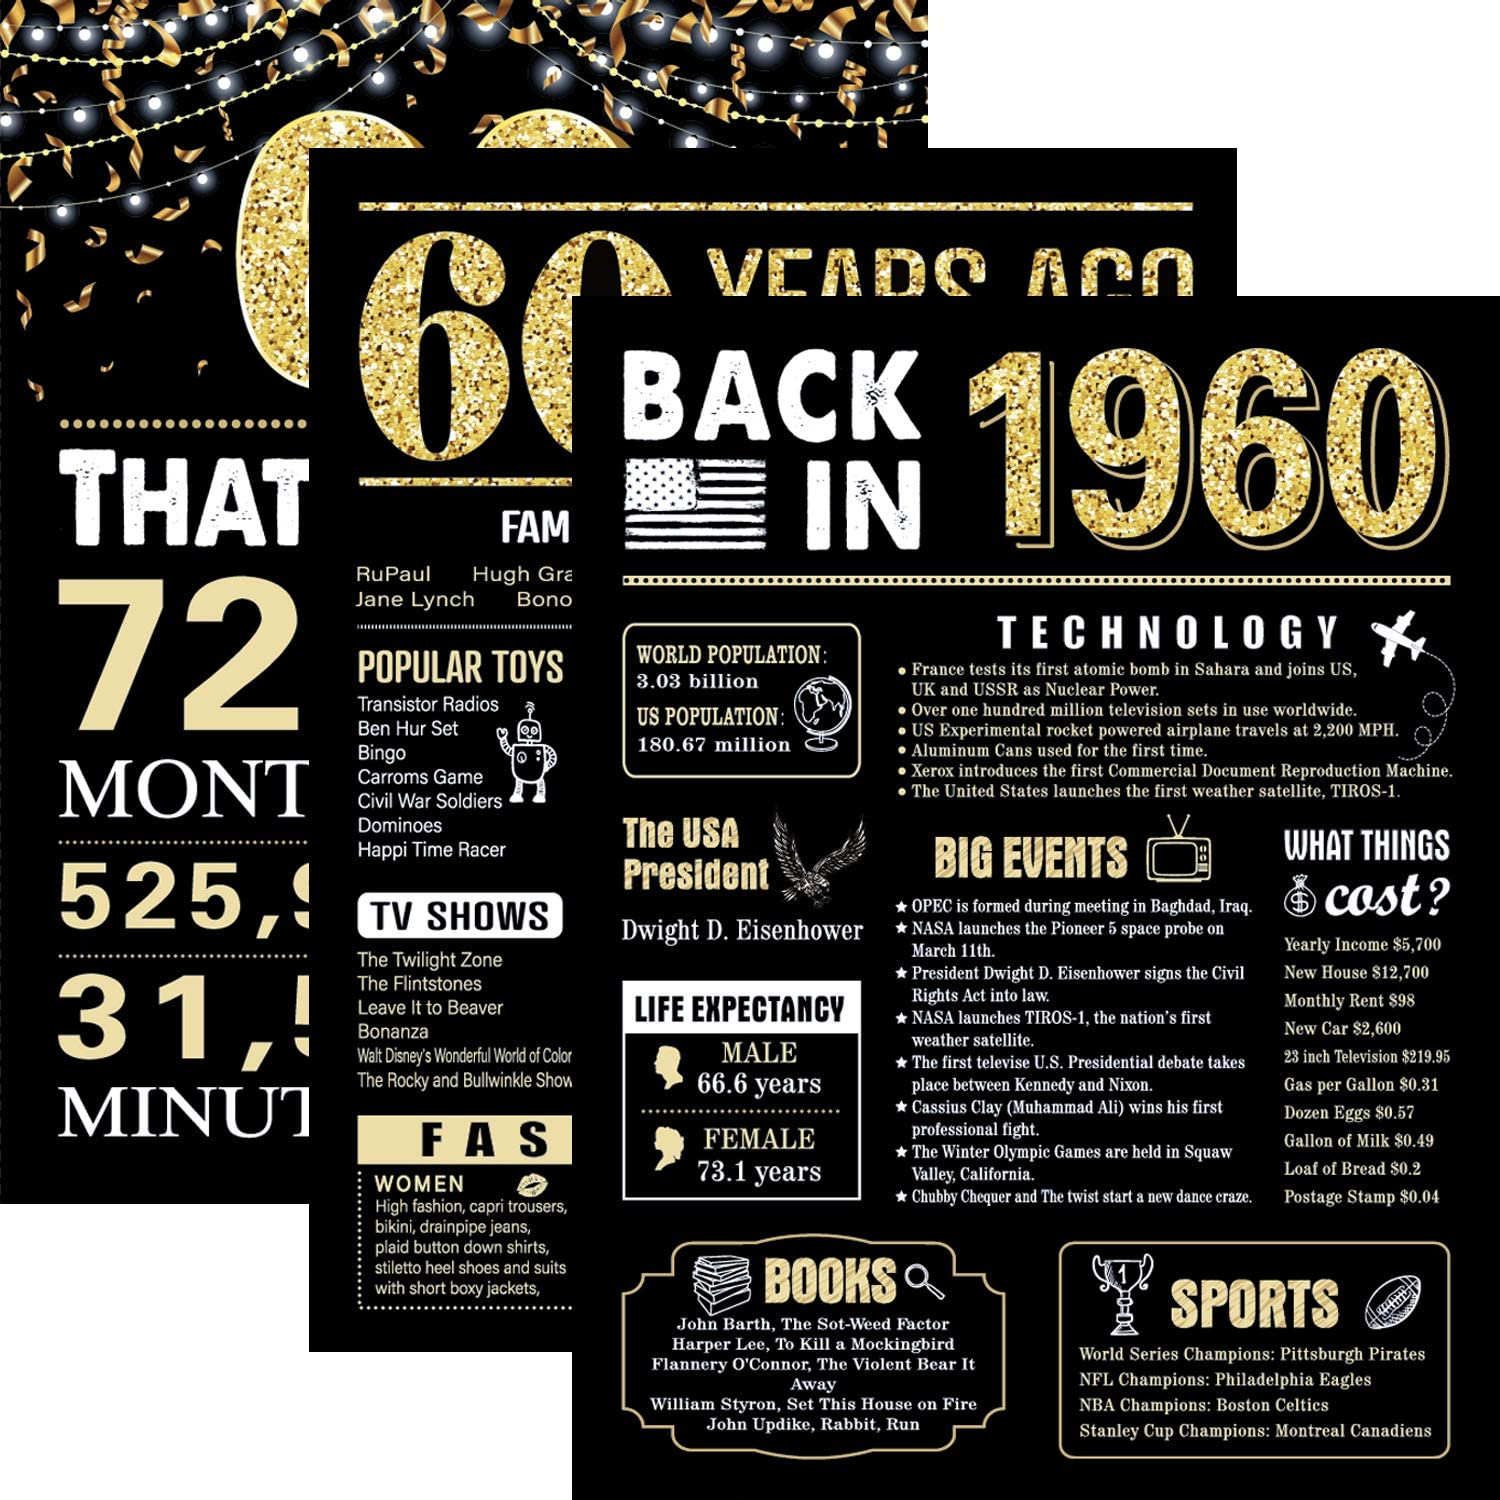 61 Years Ago 1960 Birthday Wedding Anniversary Poster 3 Pieces 11 x 14 Party Decorations Supplies Large Sign Home Decor for Men and Women (Back in 1960-61 Years)